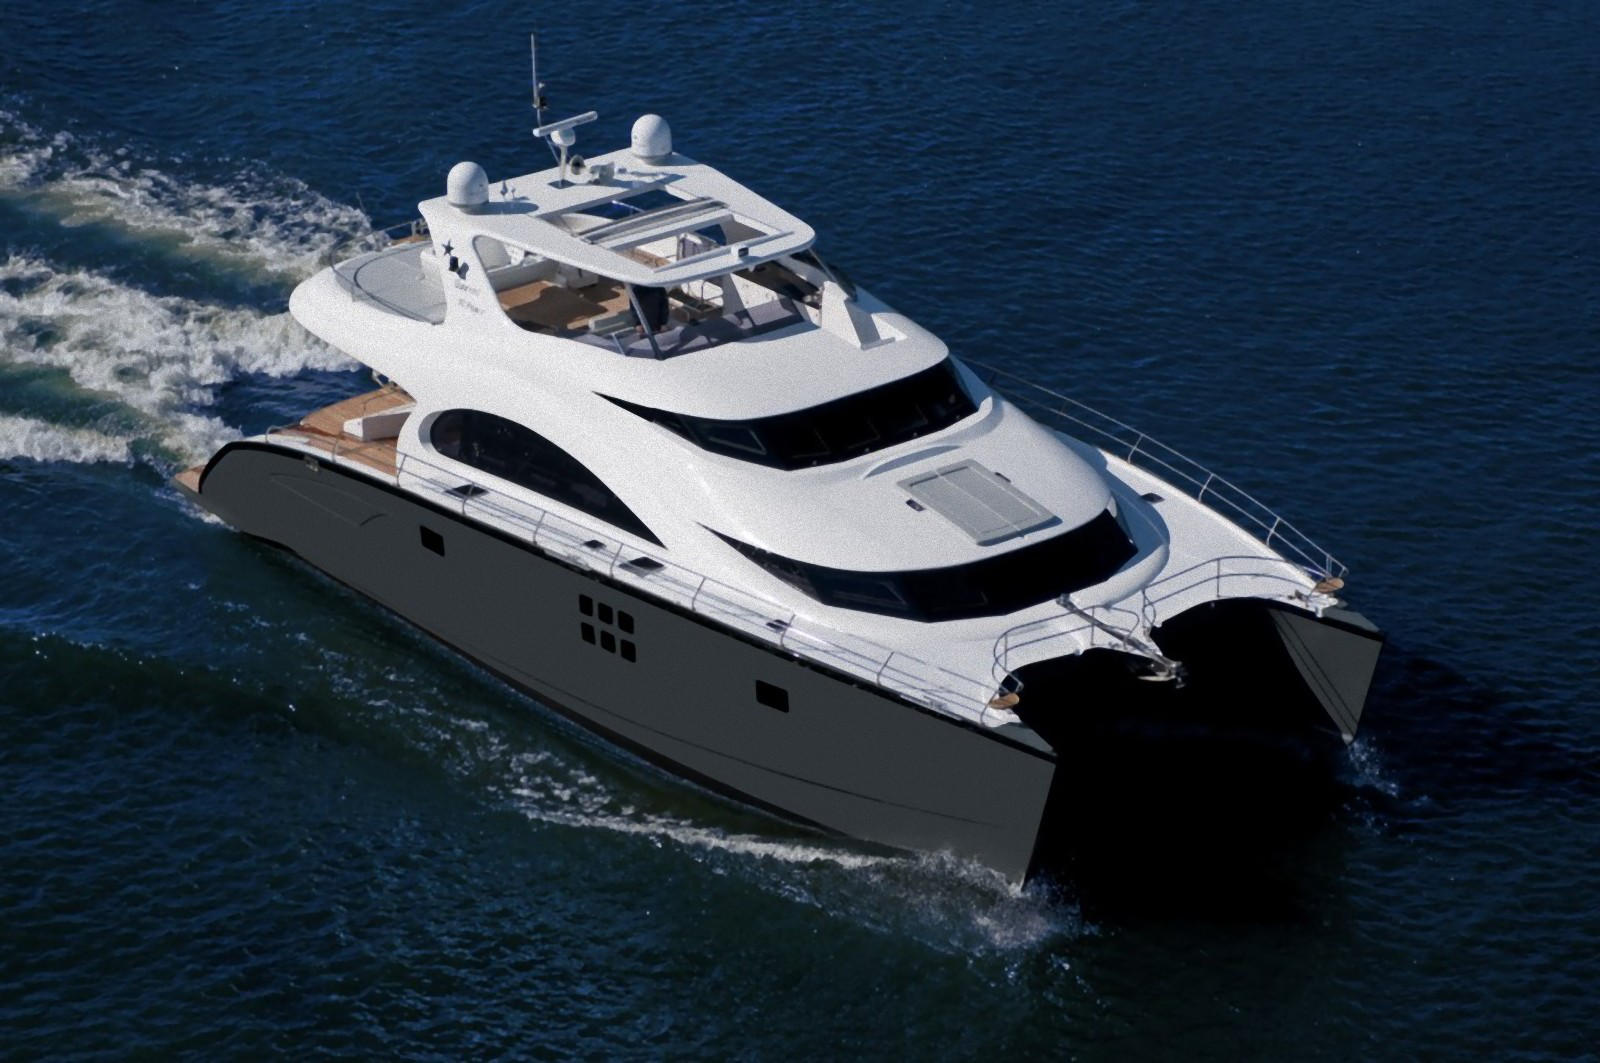 Sea Bass Luxury Yacht Charters In The Caribbean